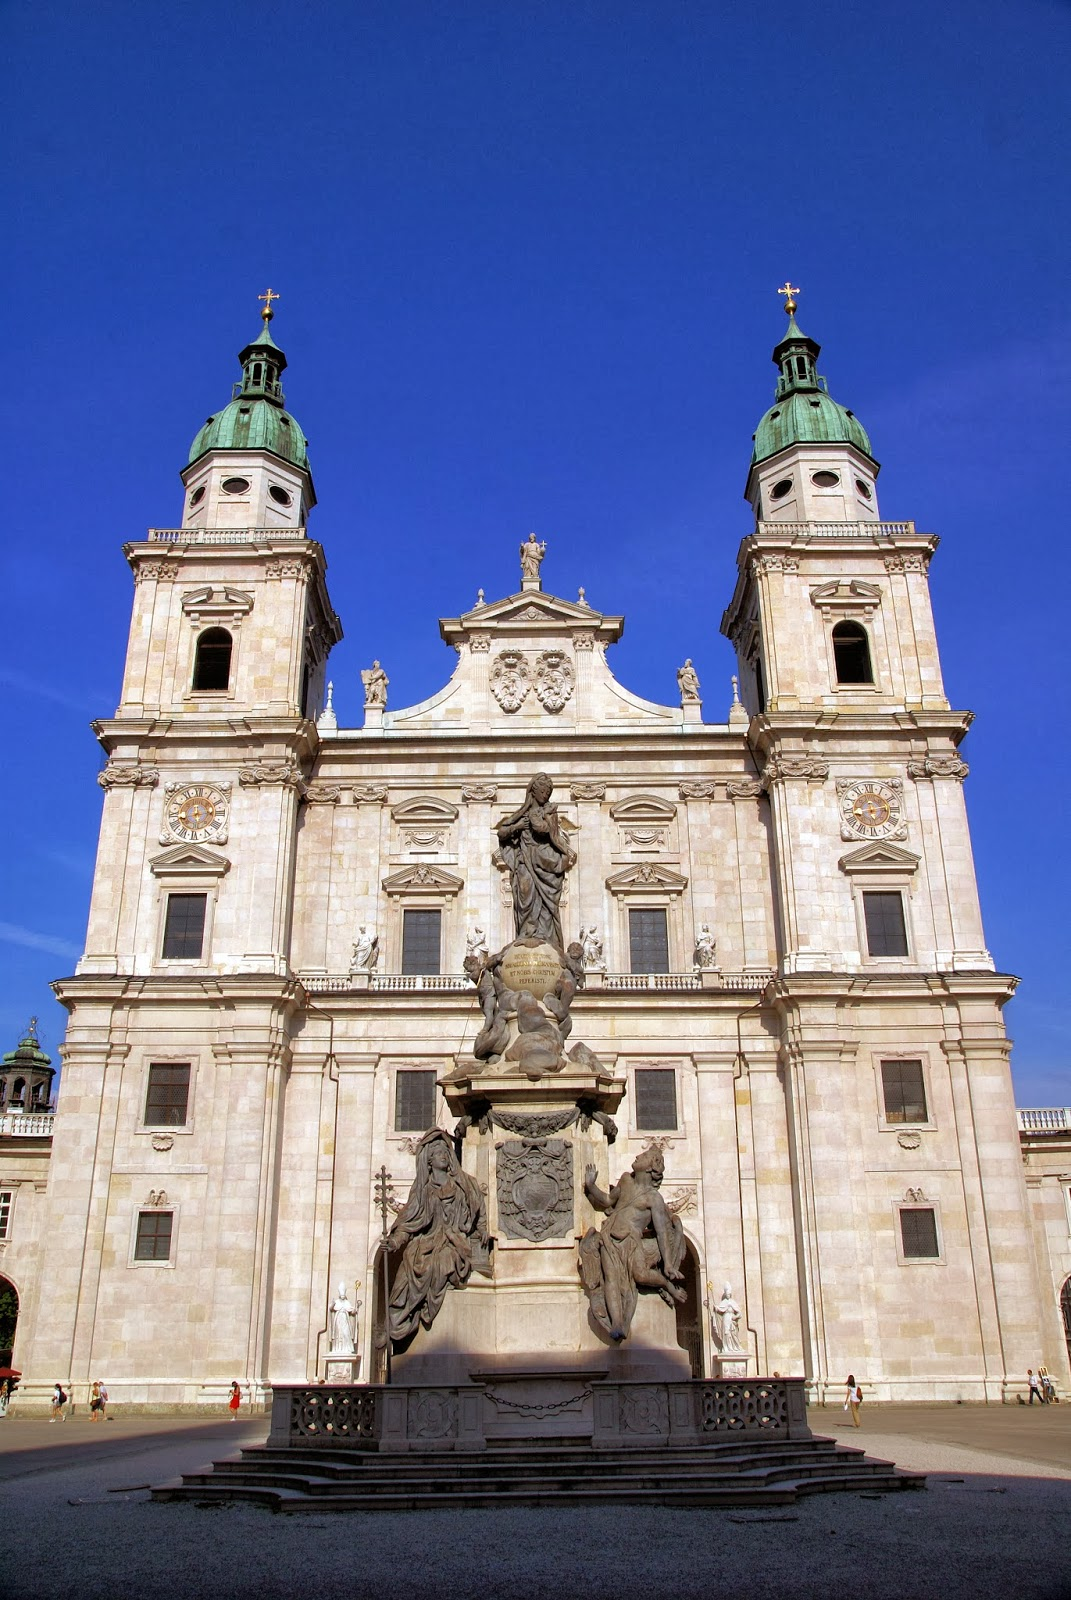 Salzburg Cathedral in the center of Altstadt or Old Town. Photo: WikiMedia.org.